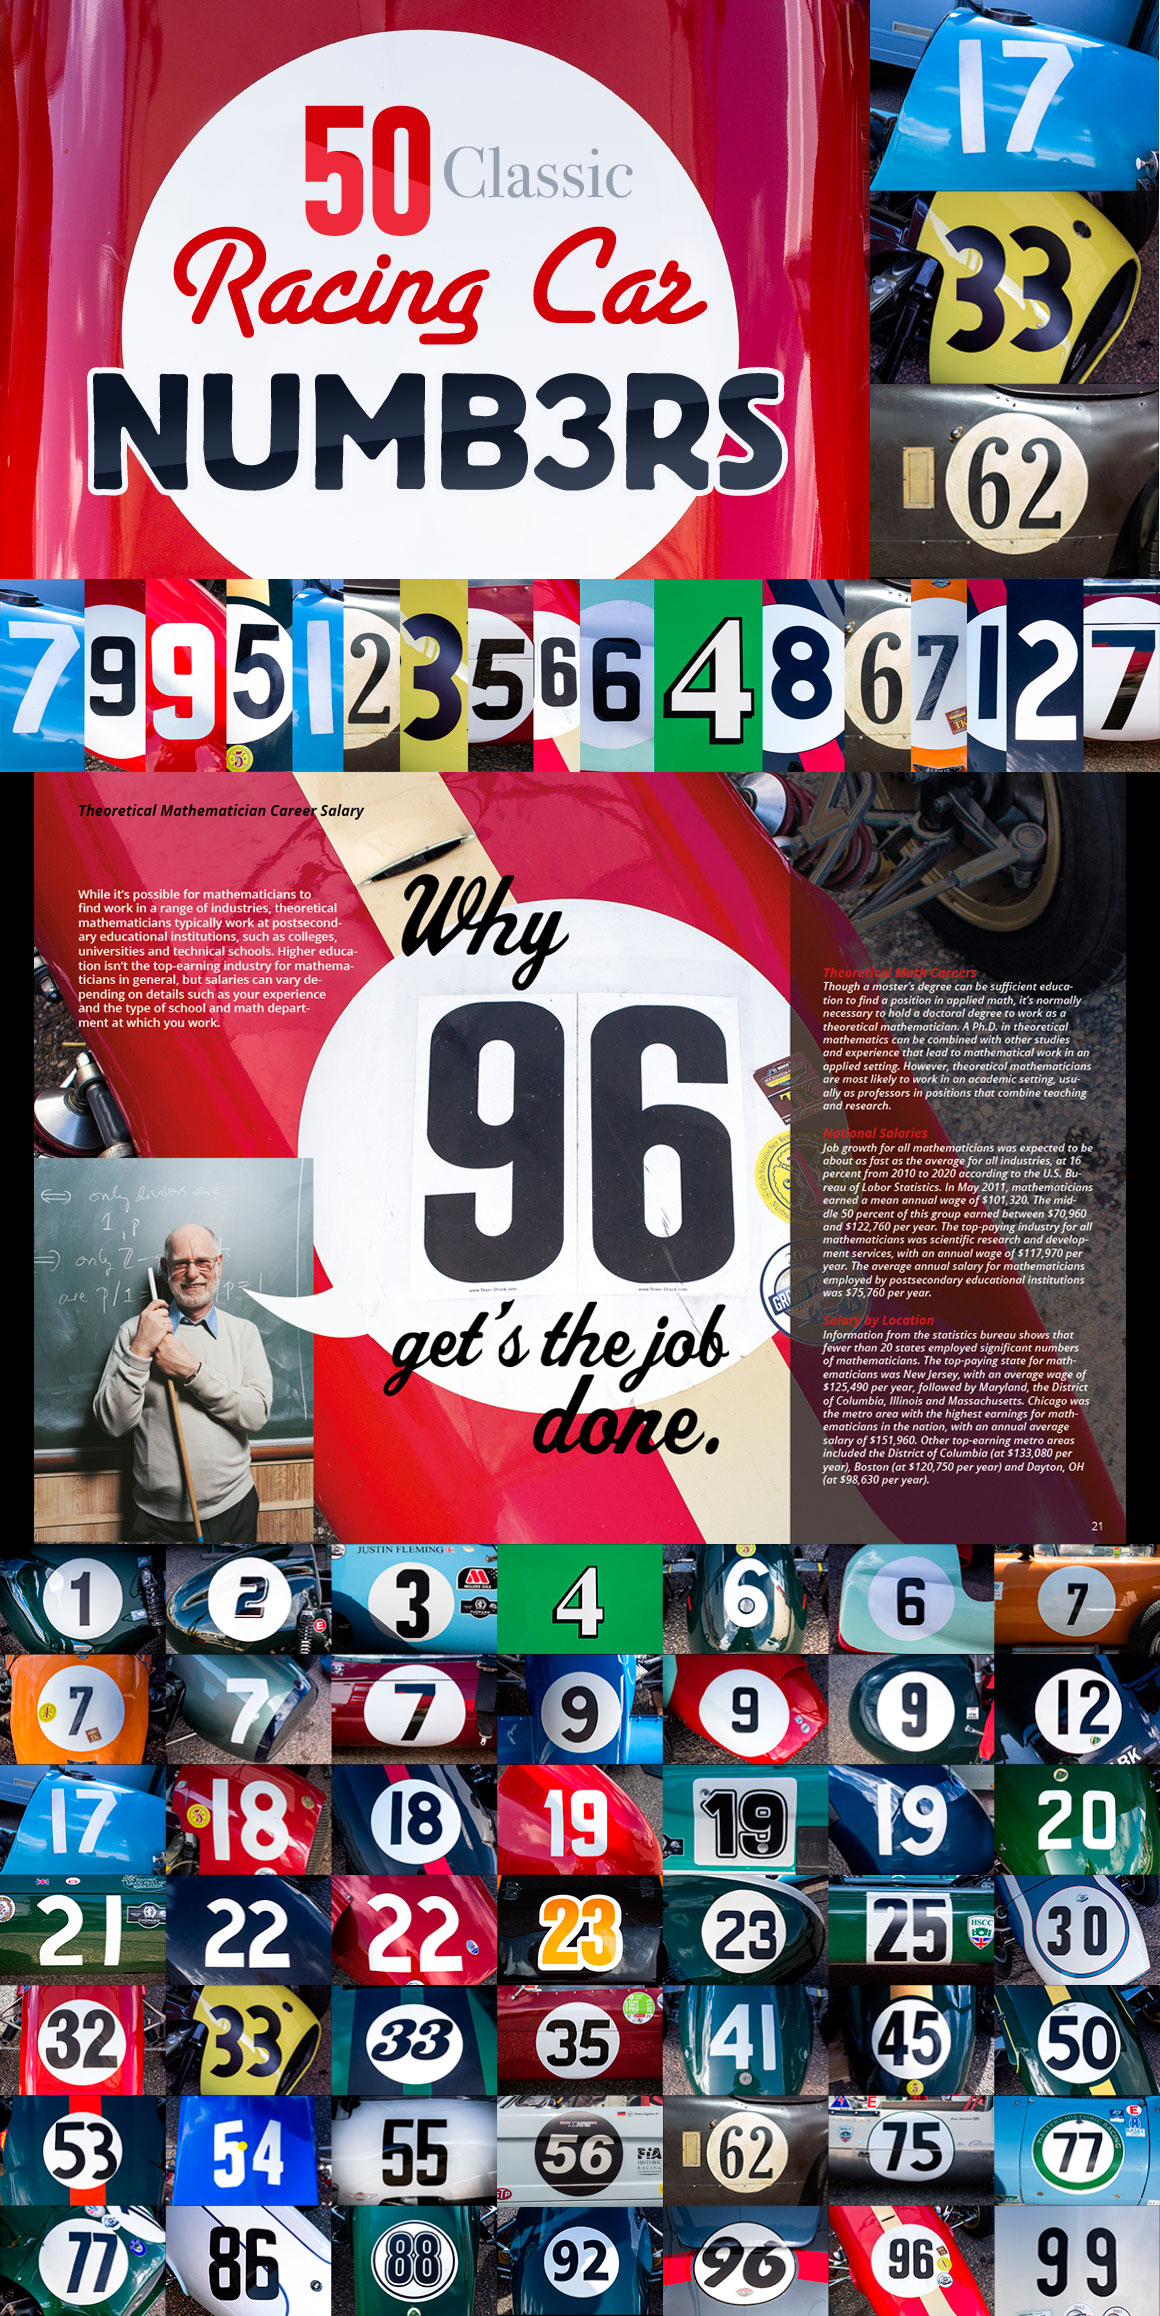 Classic Racing Car numbers